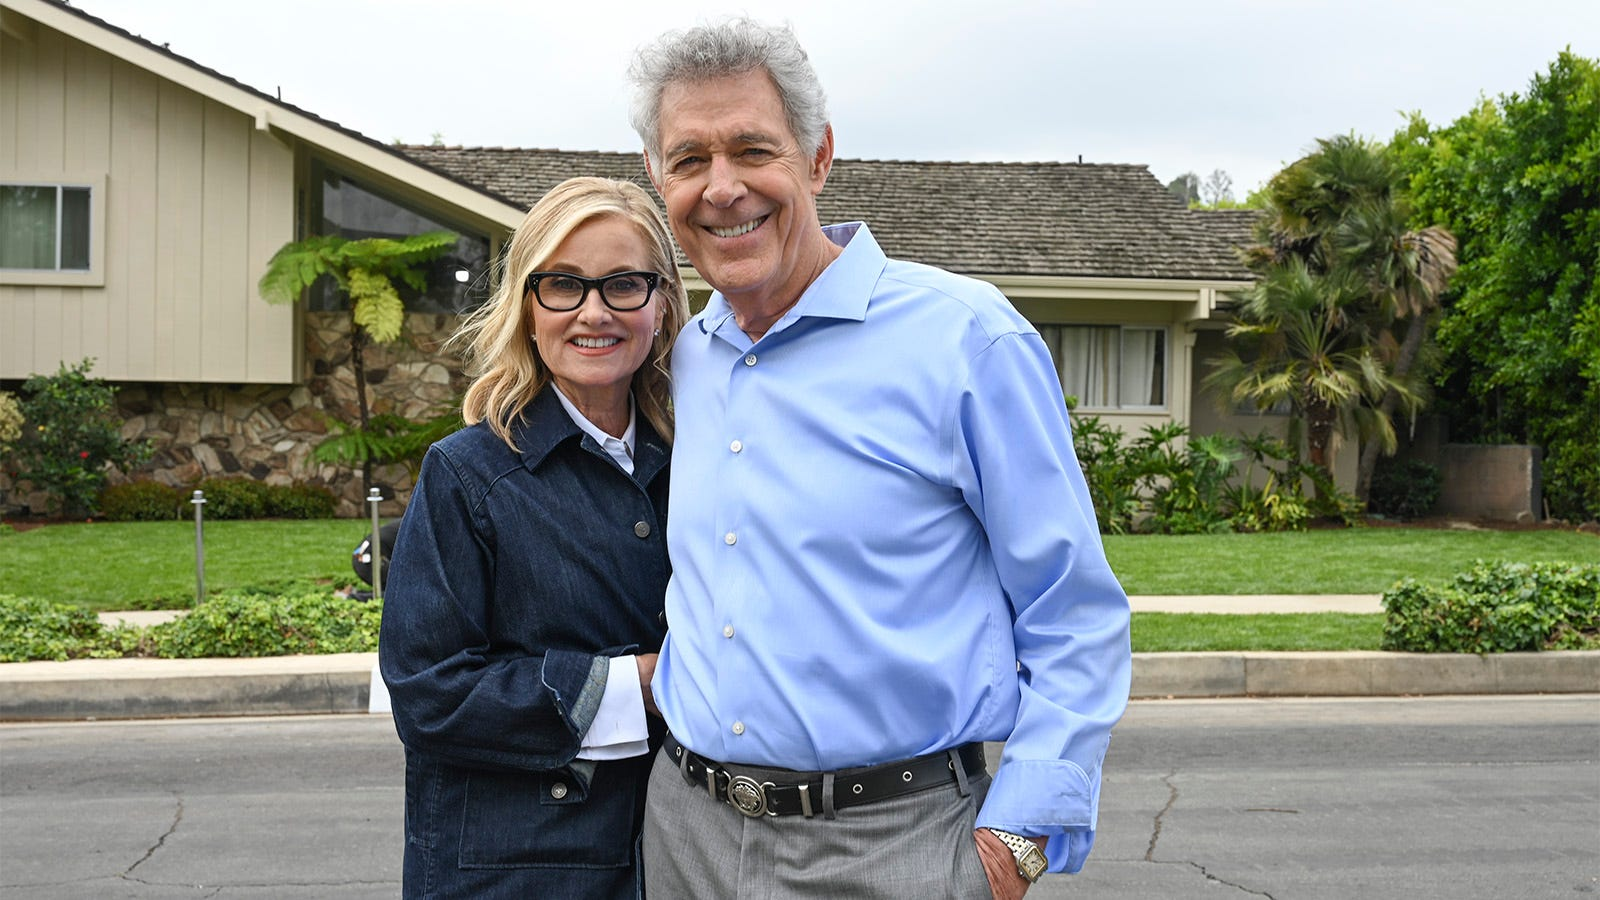 A Very Brady Christmas Cindy.The Brady Bunch House Gets A Makeover That Will Transport Fans Back To The Family Sitcom